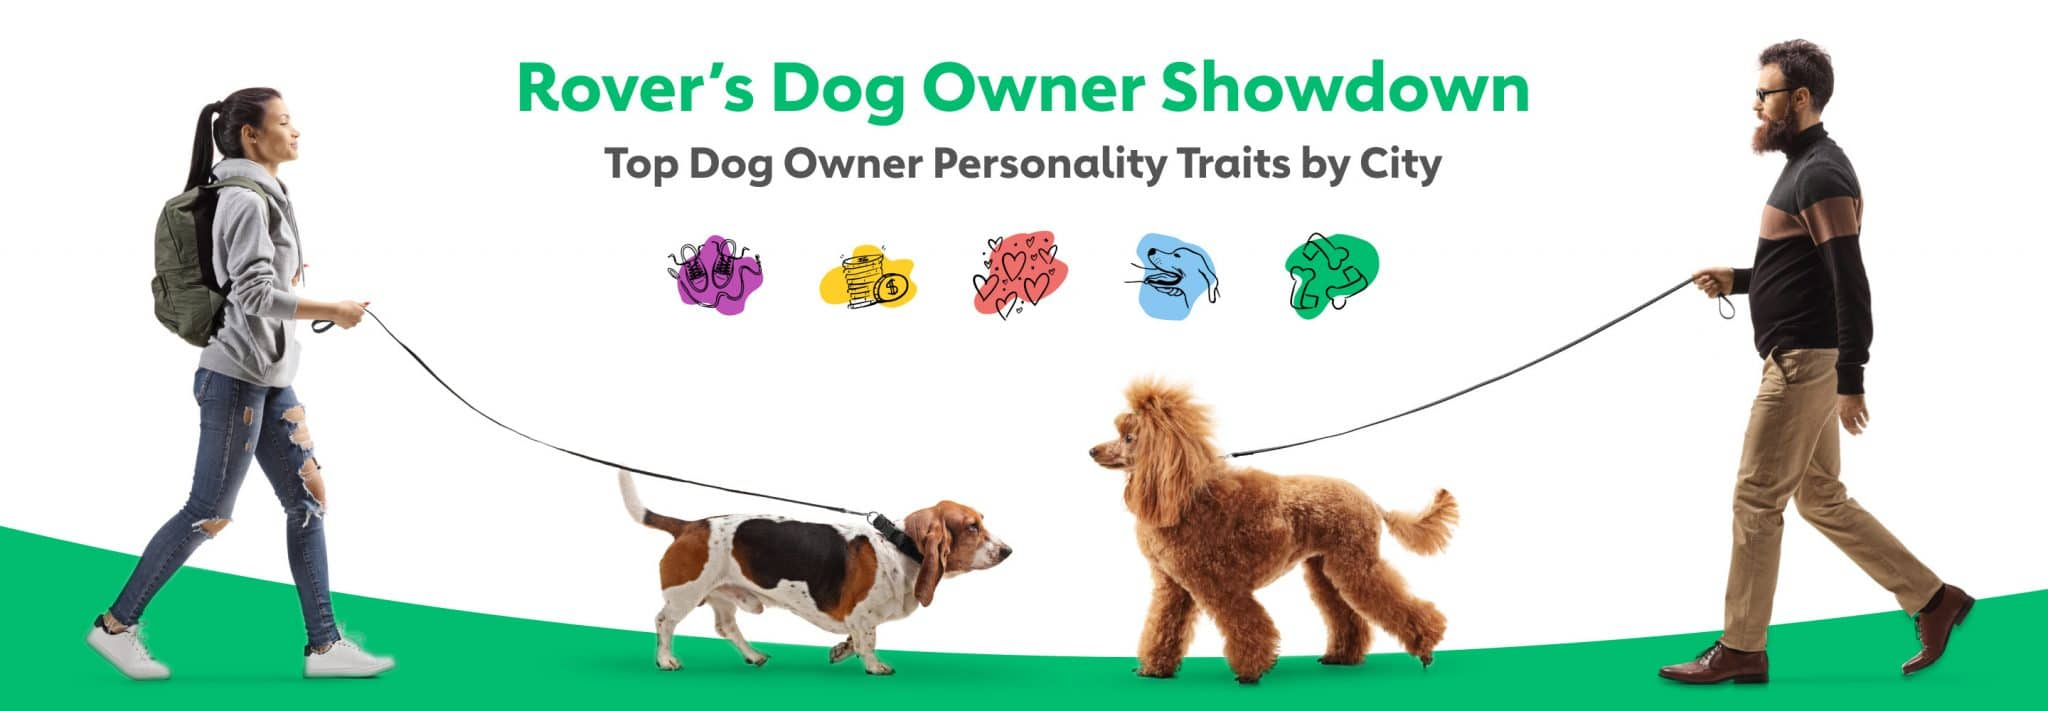 Rover's Dog Owner showdown